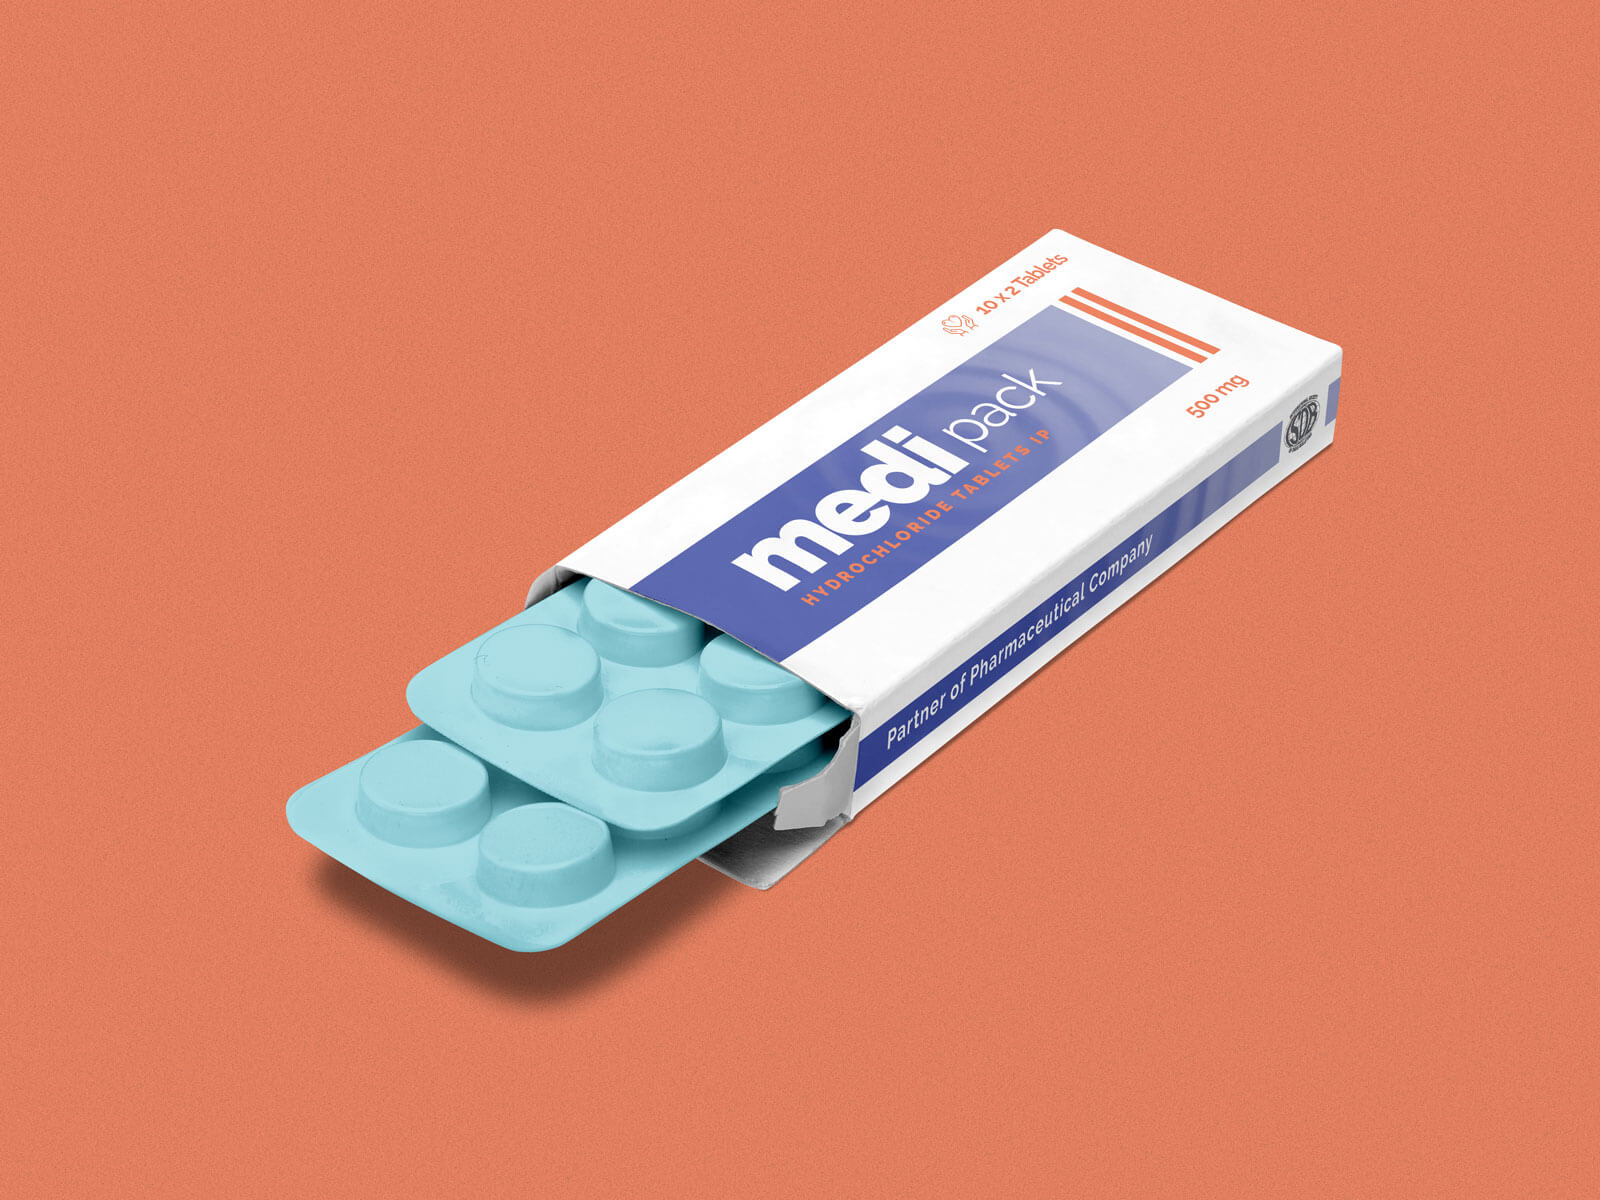 Free-Pharmaceutical-Medicine-Pill-Tablet-Box-Packaging-Mockup-PSD-File